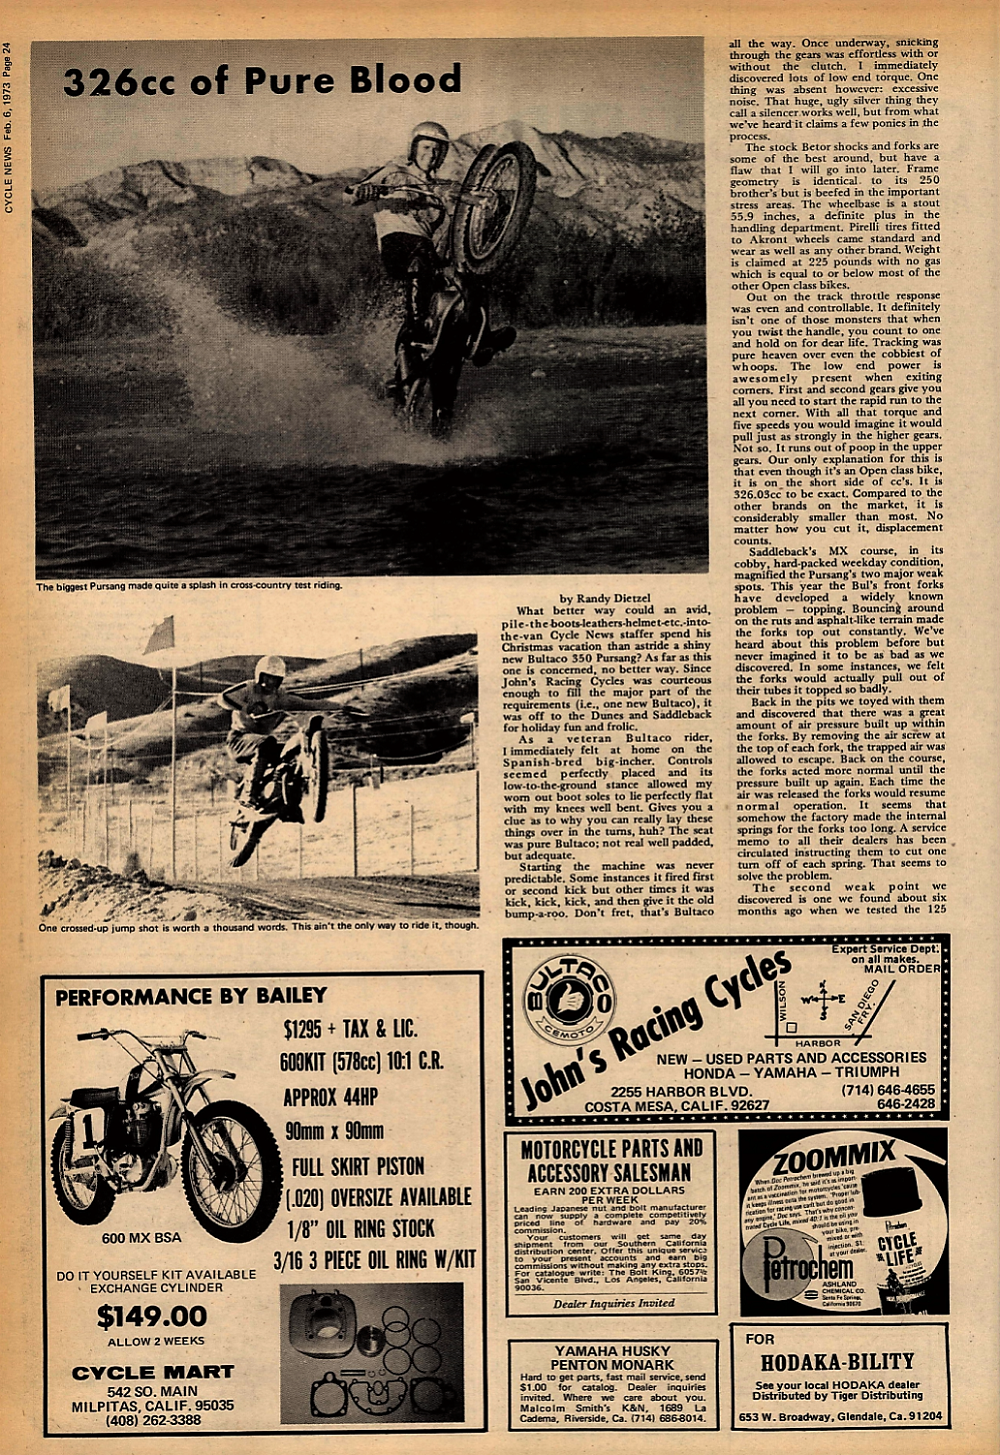 1973 Bultaco Pursang road test. 1.jpg